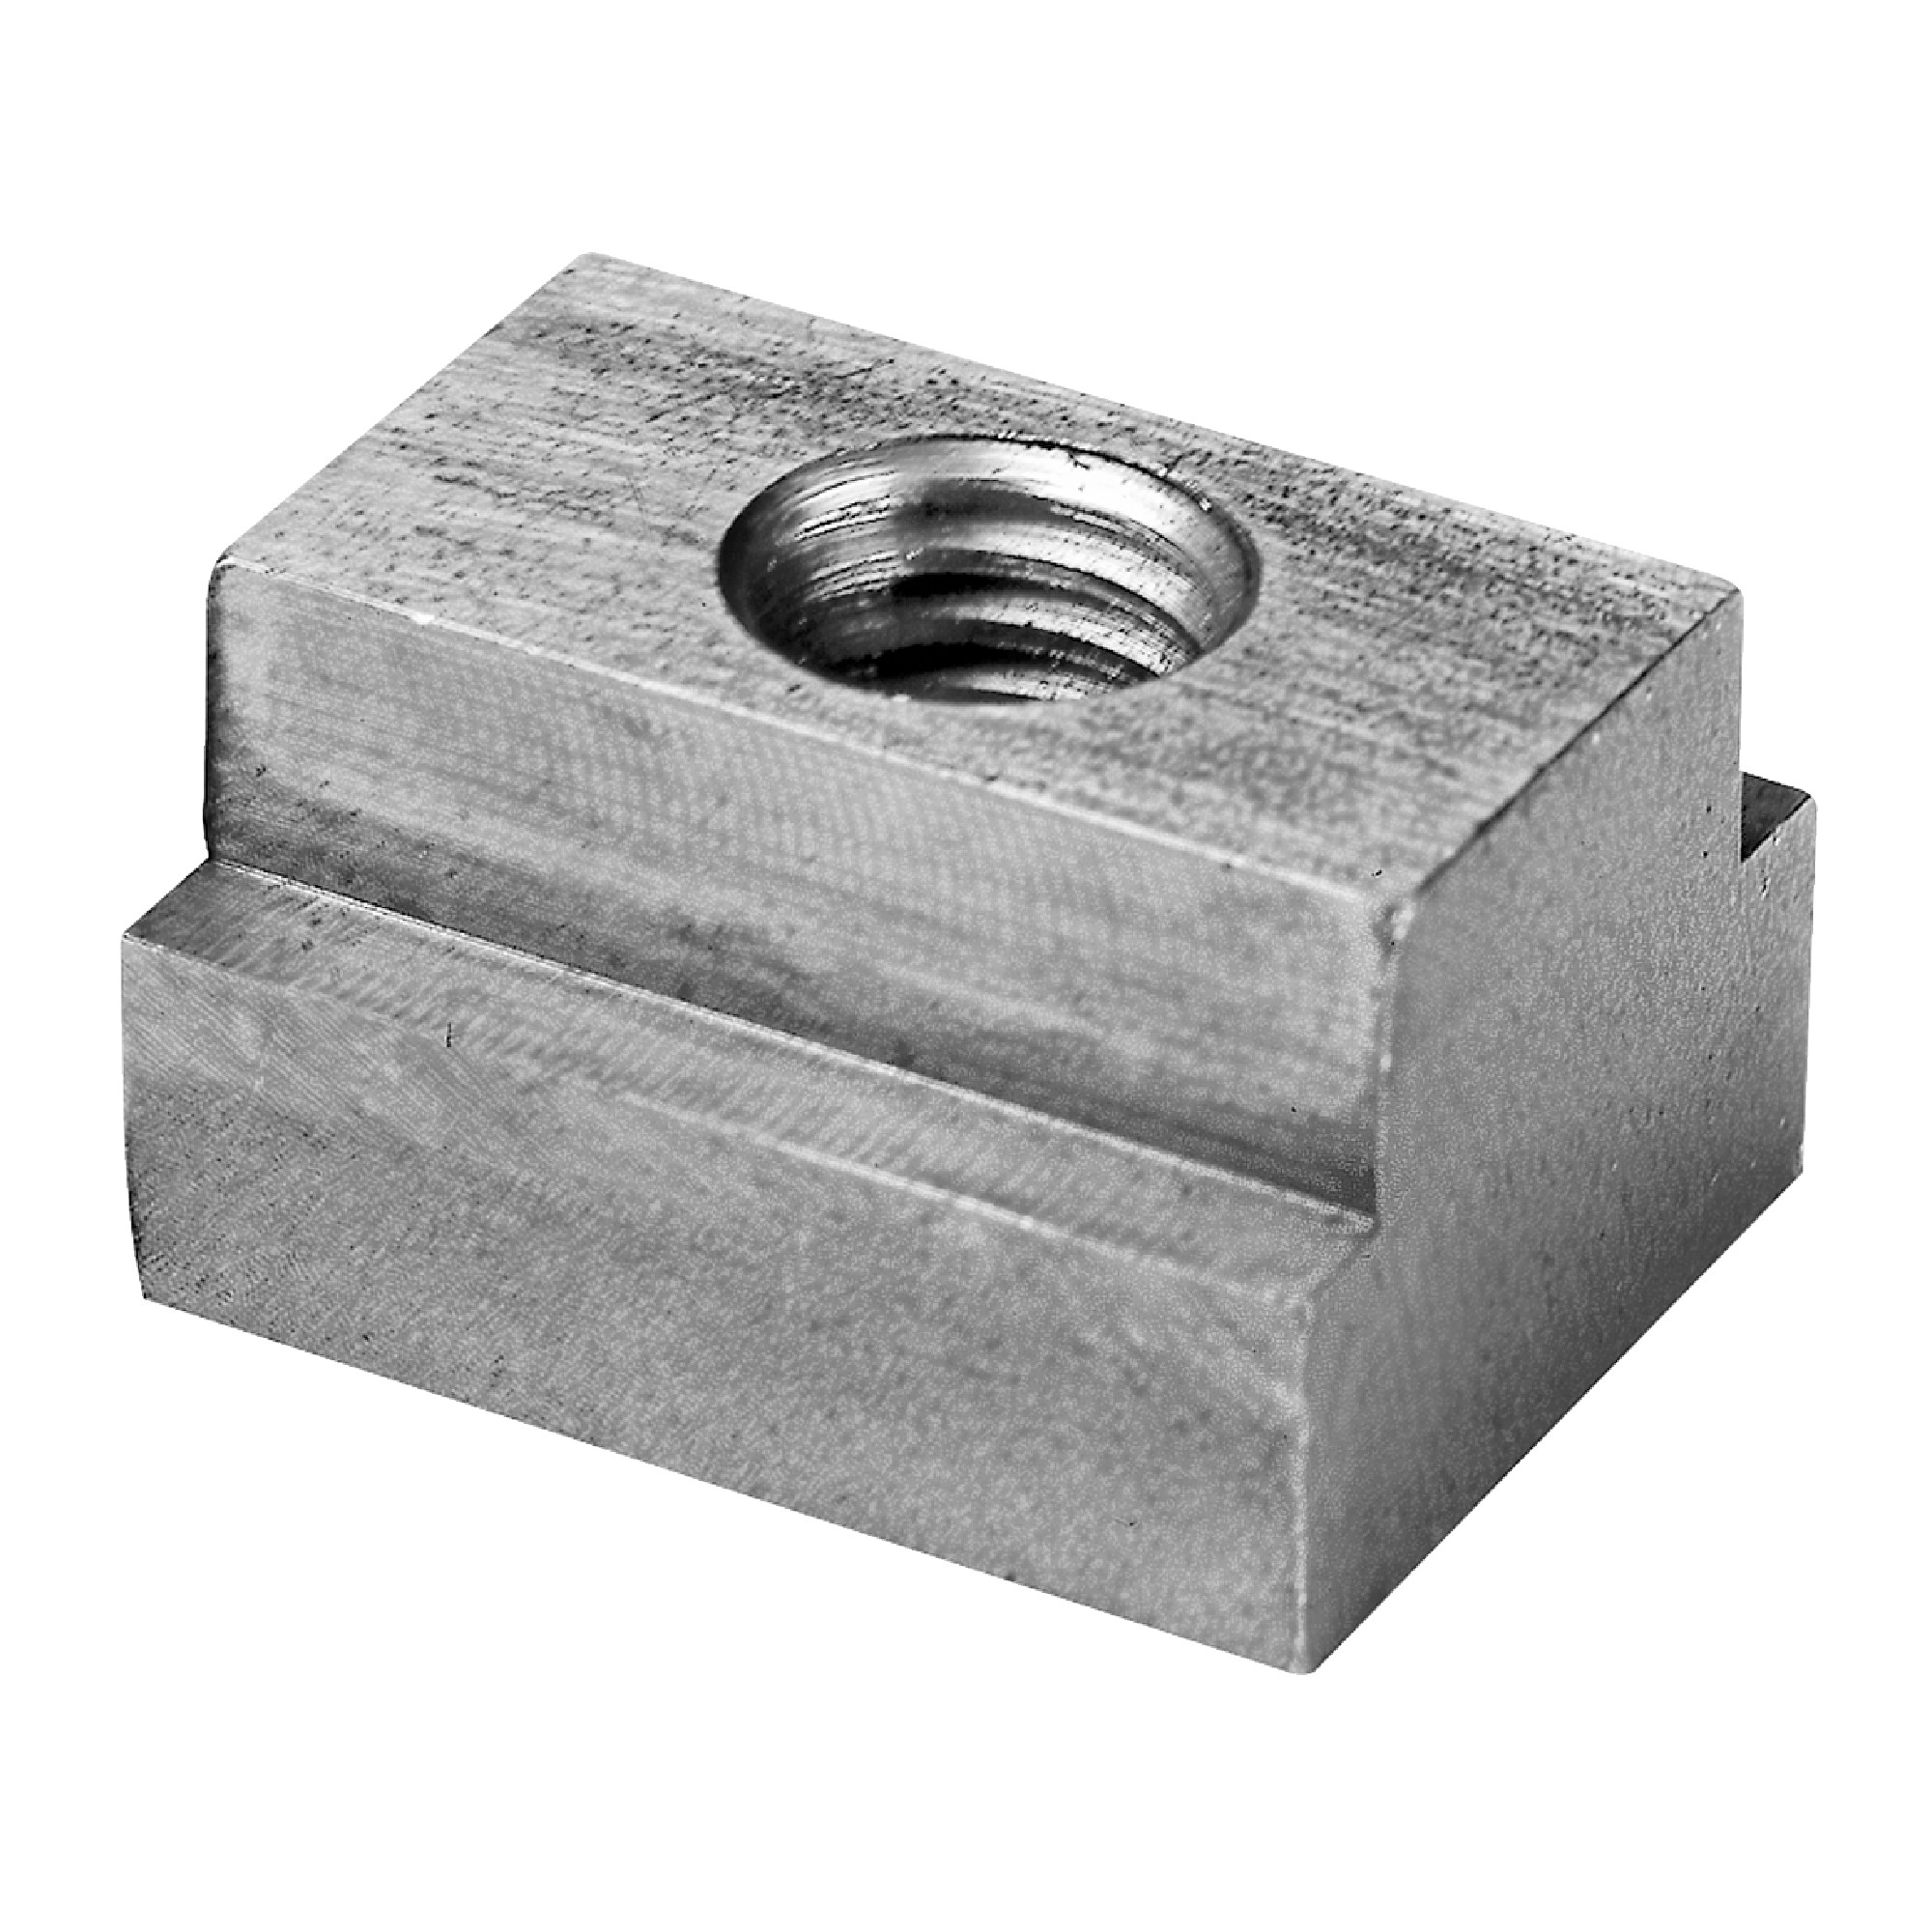 Stainless Steel T-Slot Nut